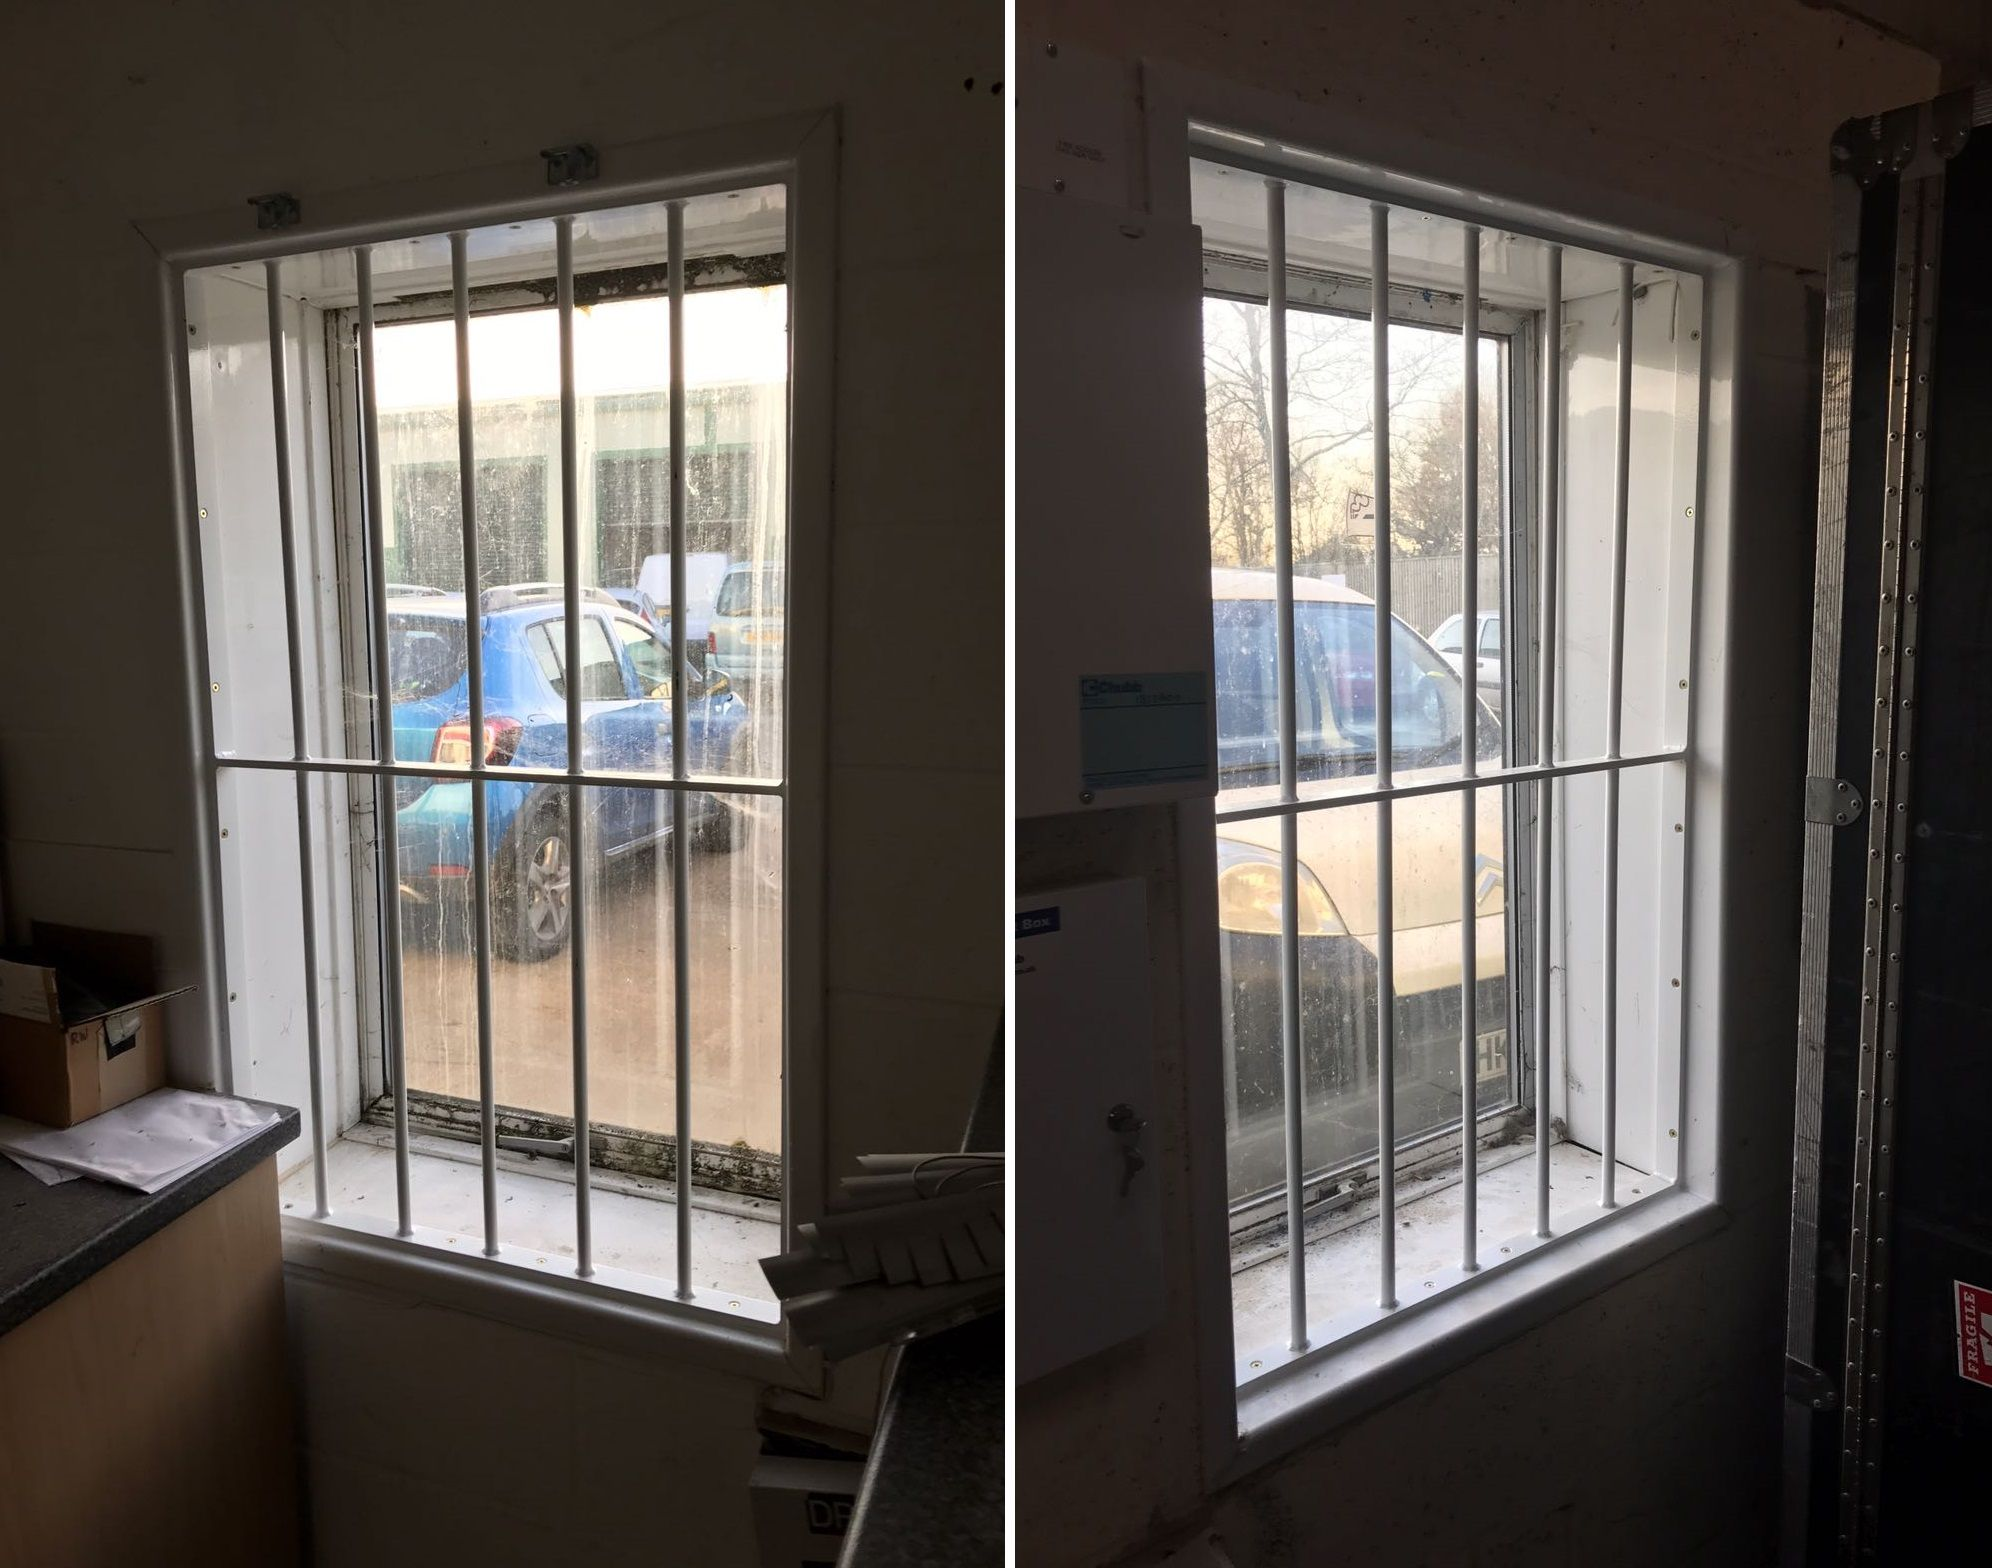 Installation Of Our Rsg2000 Security Window Bars Securing A Retail Warehouse In Romsey Hampshire Burglar Bars Window Bars Windows